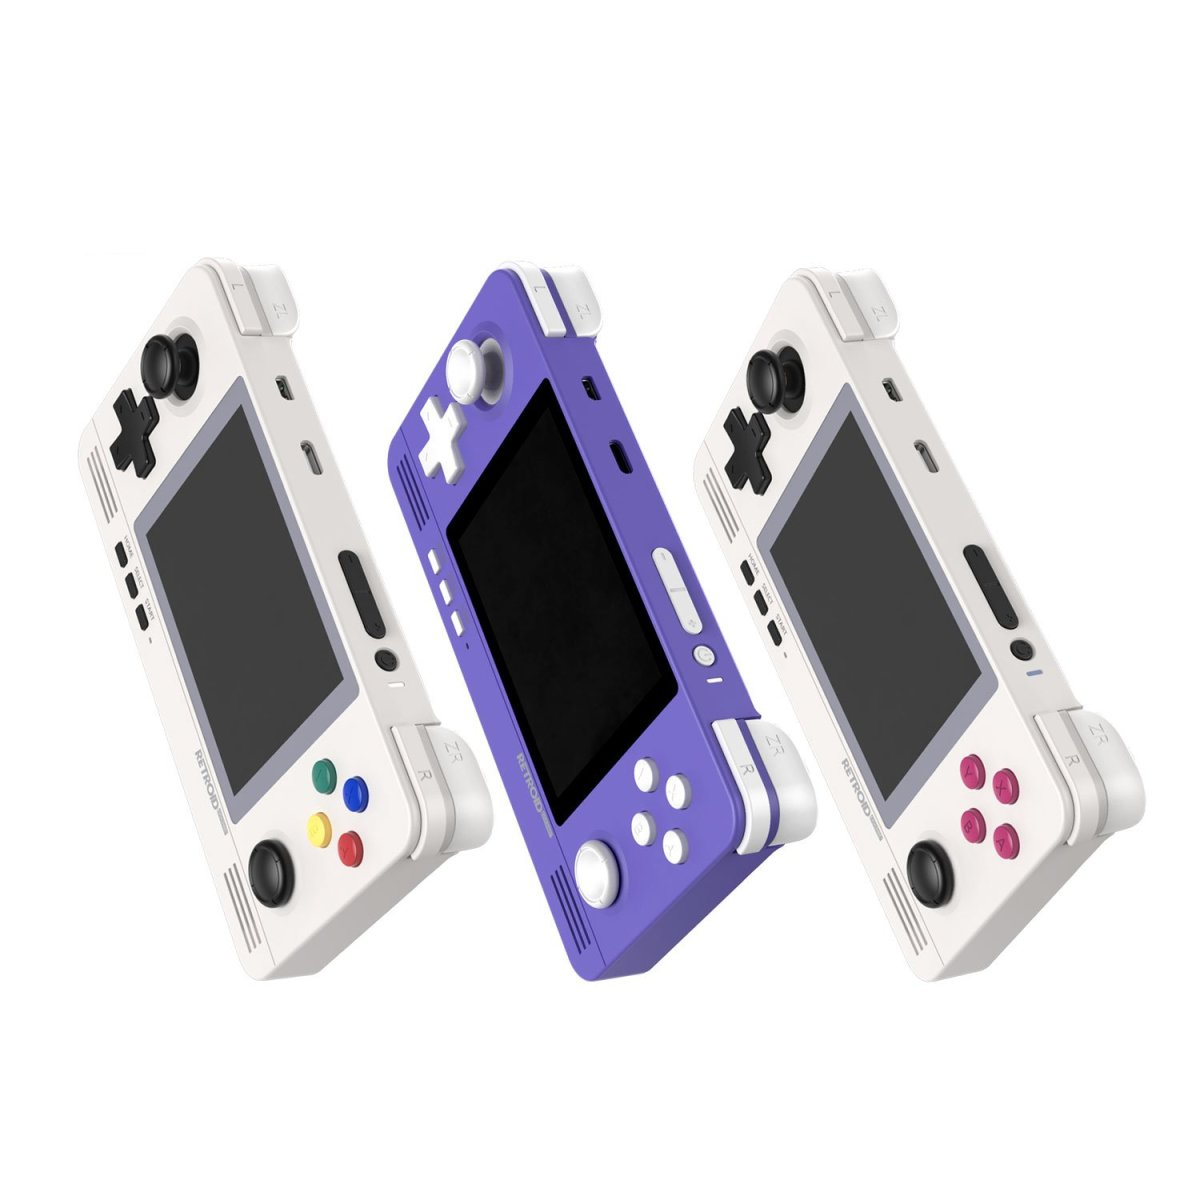 """From the left, the """"8 Bit"""", """"Indigo"""" and """"Retro"""" color options for the Retroid Pocket 2. There are up to 16 different colors."""